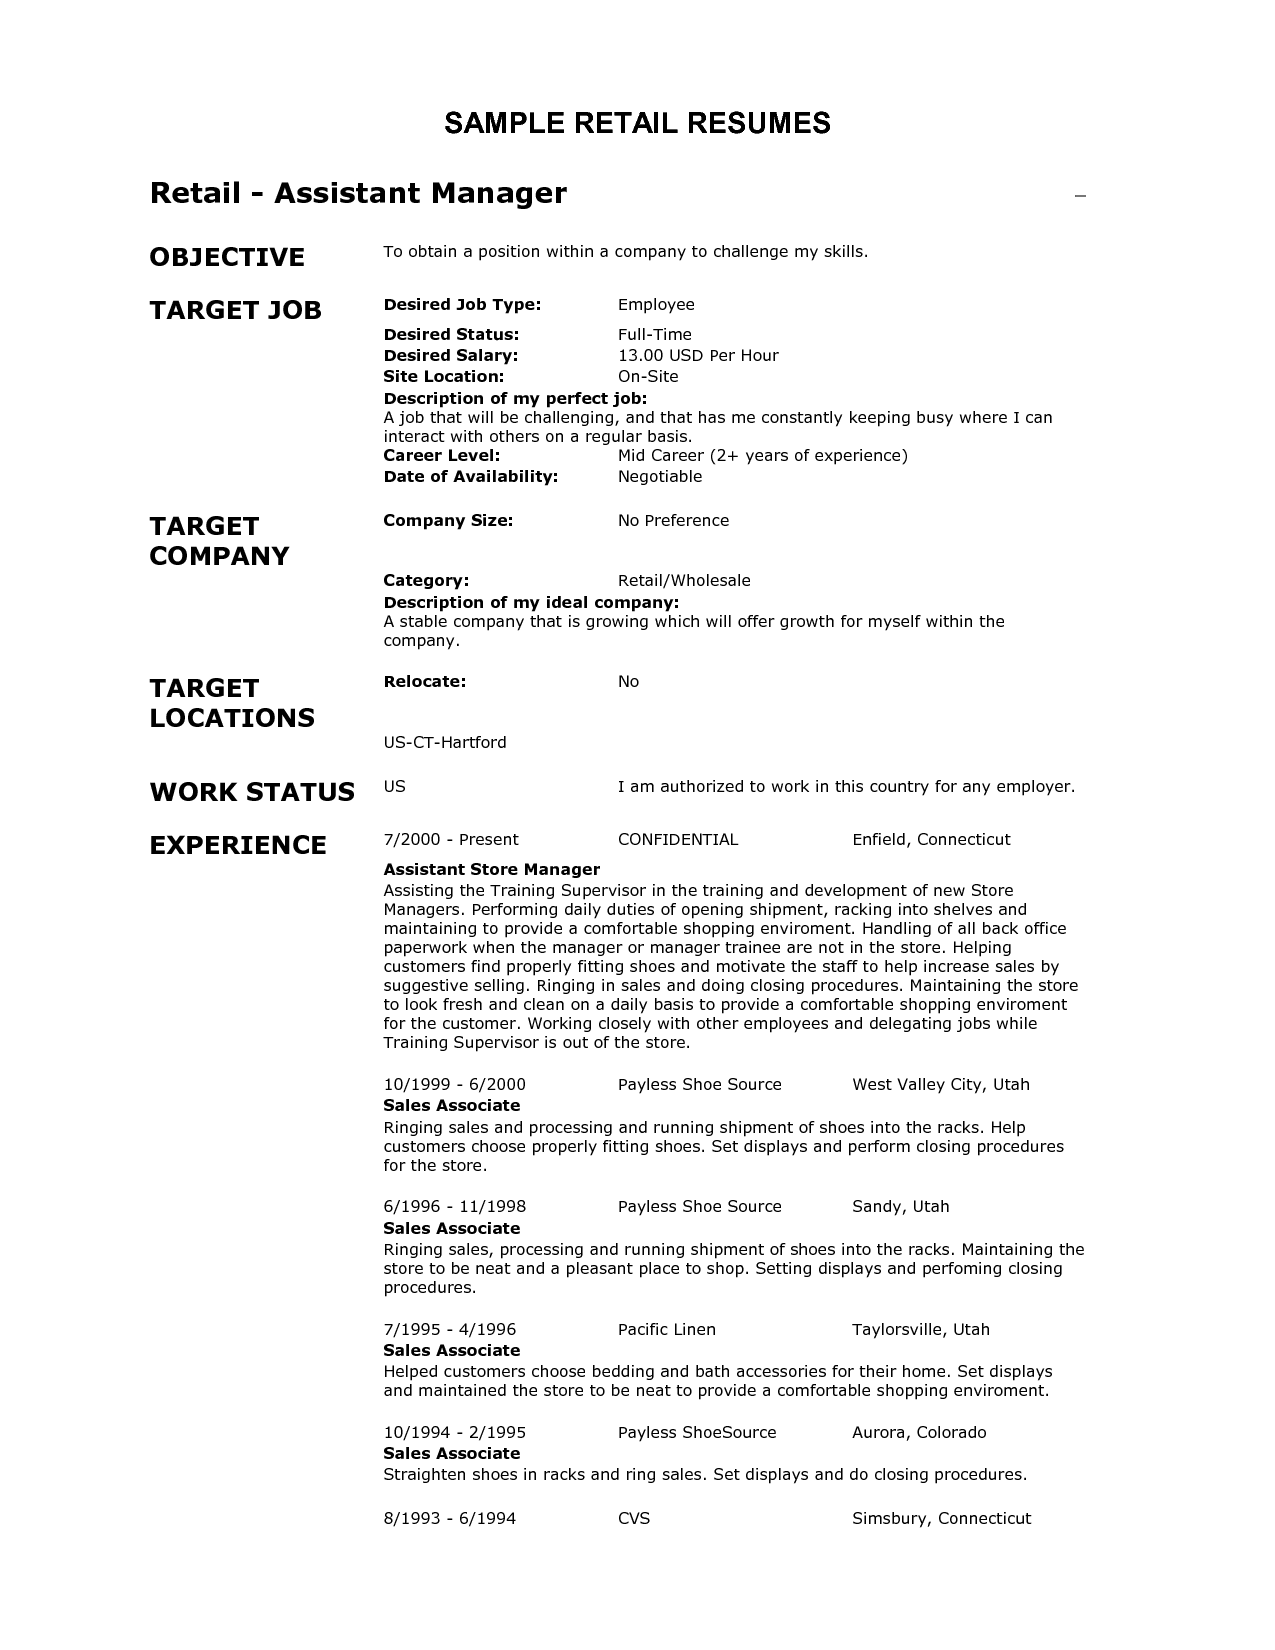 10 best resume objective samples